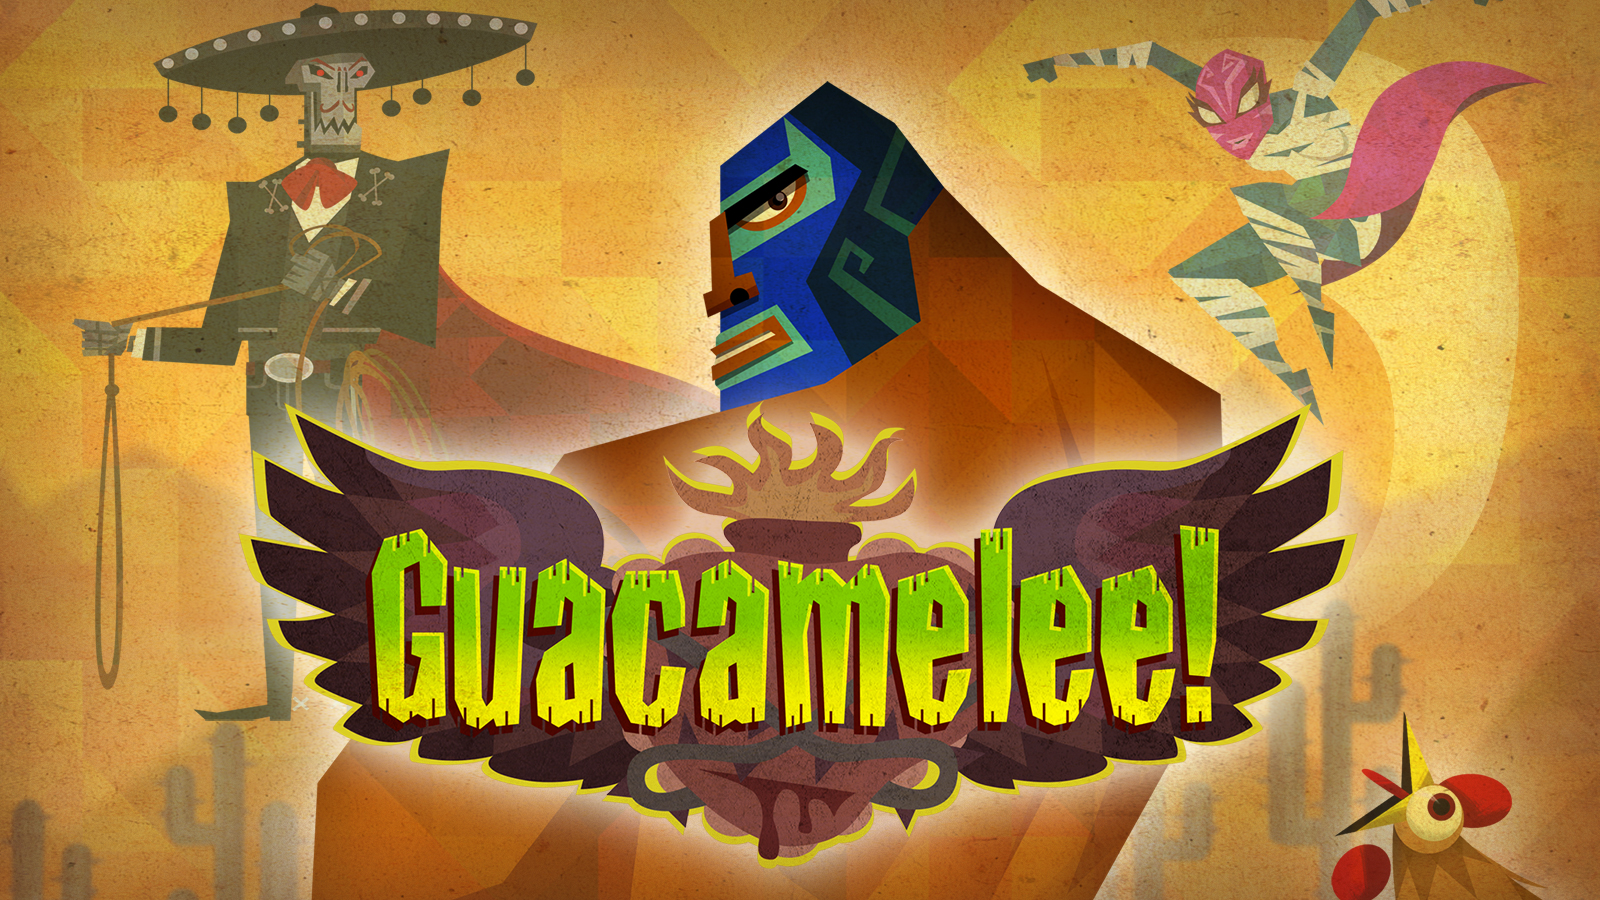 High Resolution Wallpaper | Guacamelee! 1600x900 px